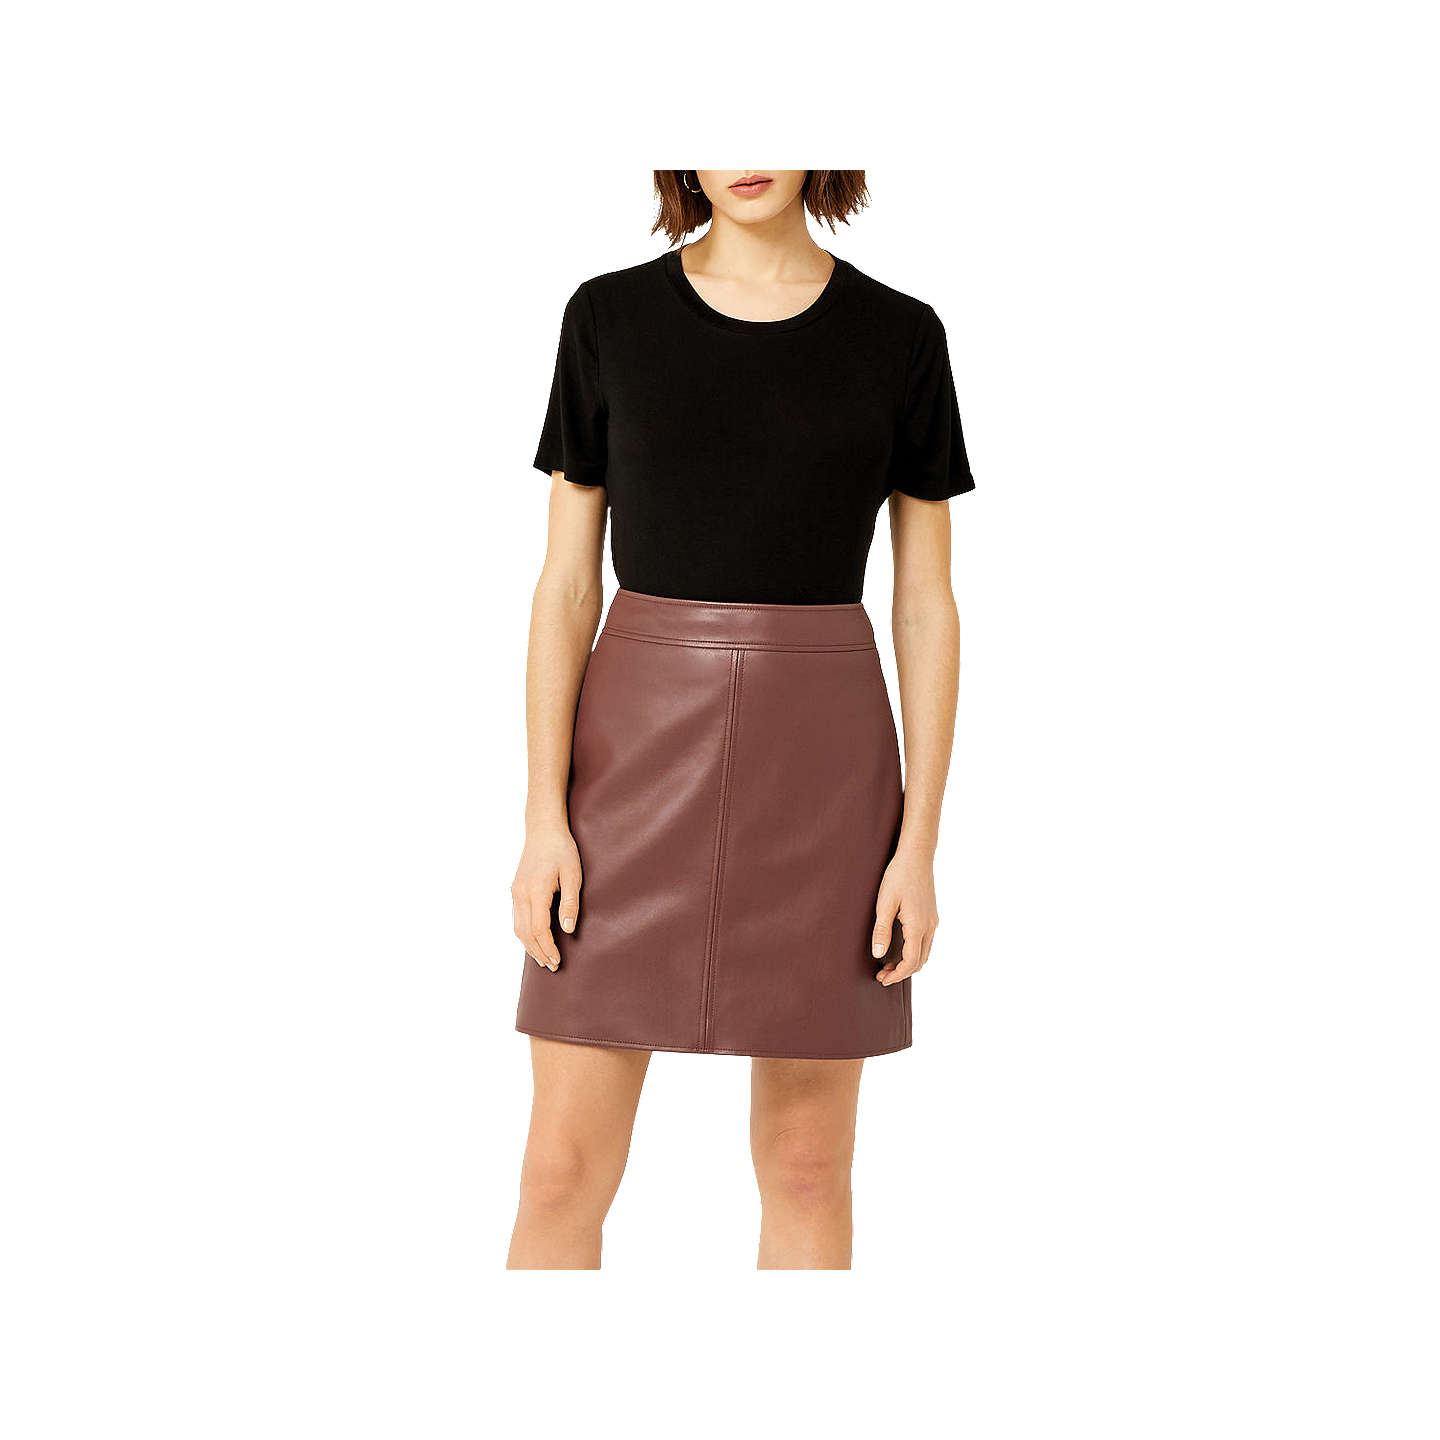 BuyWarehouse Barbican A-Line Skirt, Tan, 6 Online at johnlewis.com